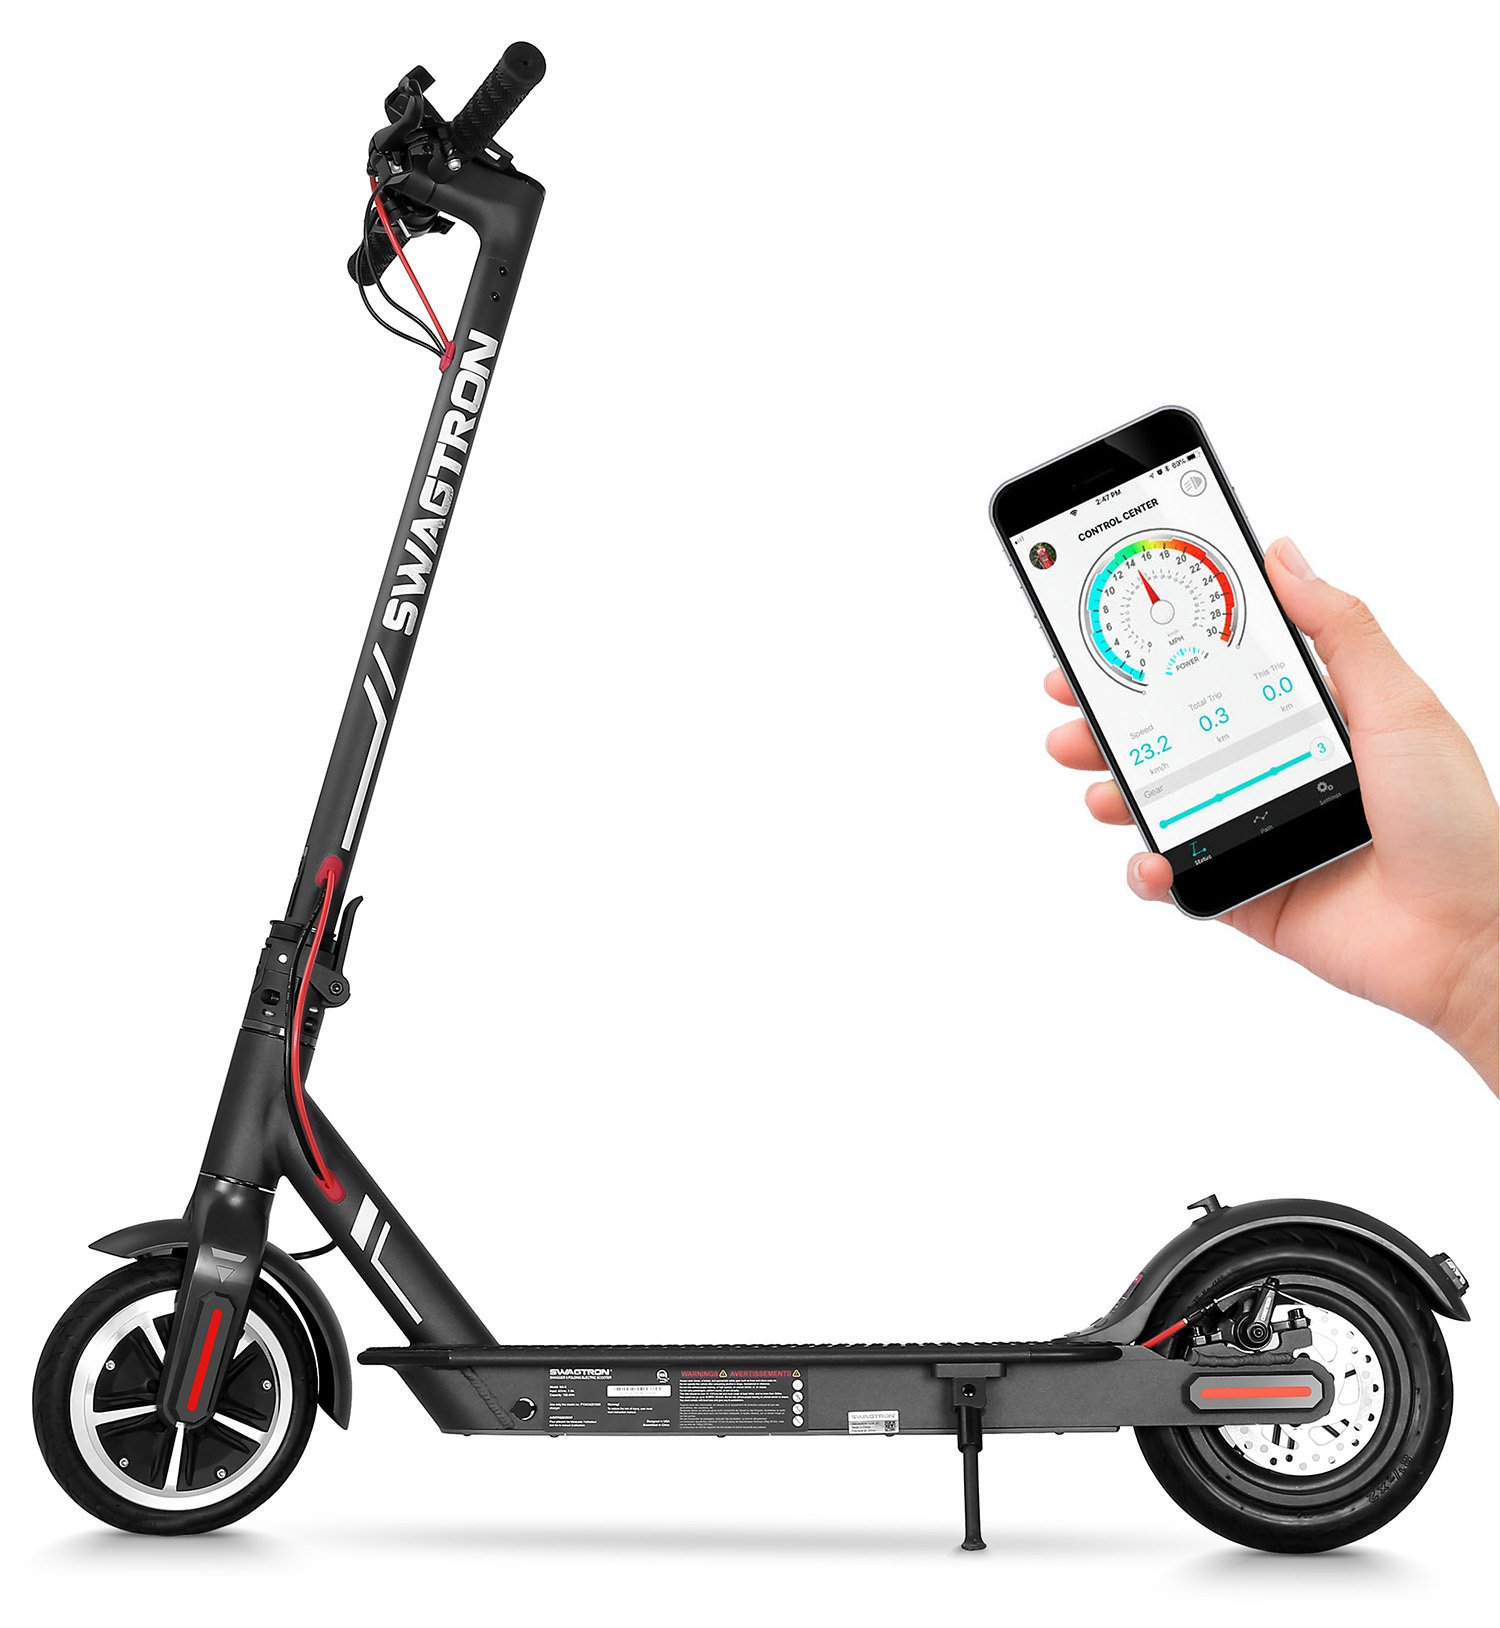 Swagtron High Speed Electric Scooter with 8.5'' Cushioned Tires, Cruise Control and 1-Step Portable Folding - Swagger 5 by Swagtron